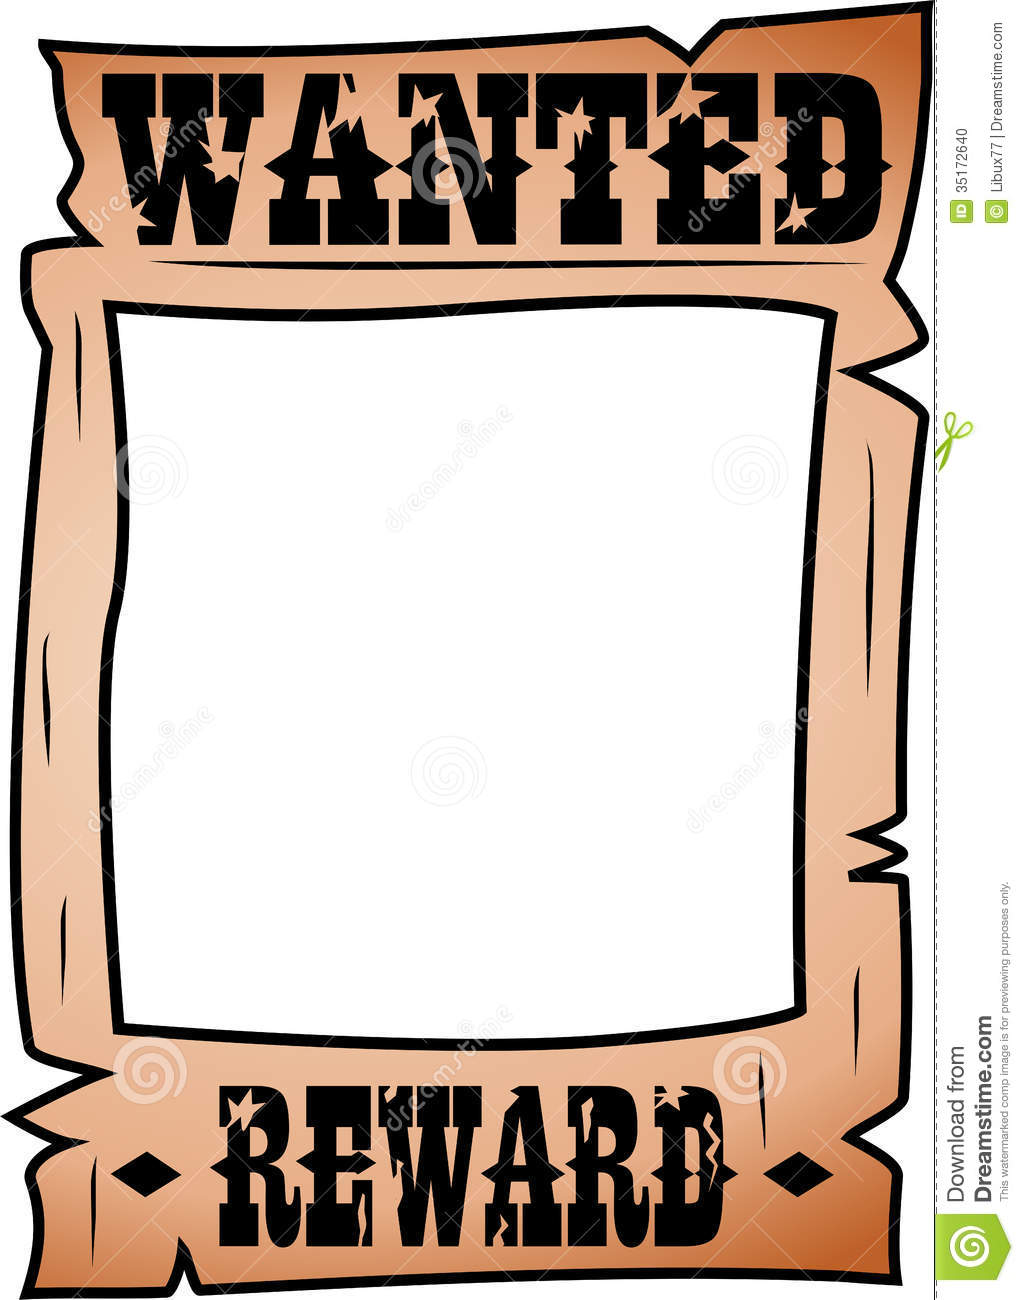 Wanted Poster Clipart Wanted Illustratio-Wanted Poster Clipart Wanted Illustrations And Clipart-13